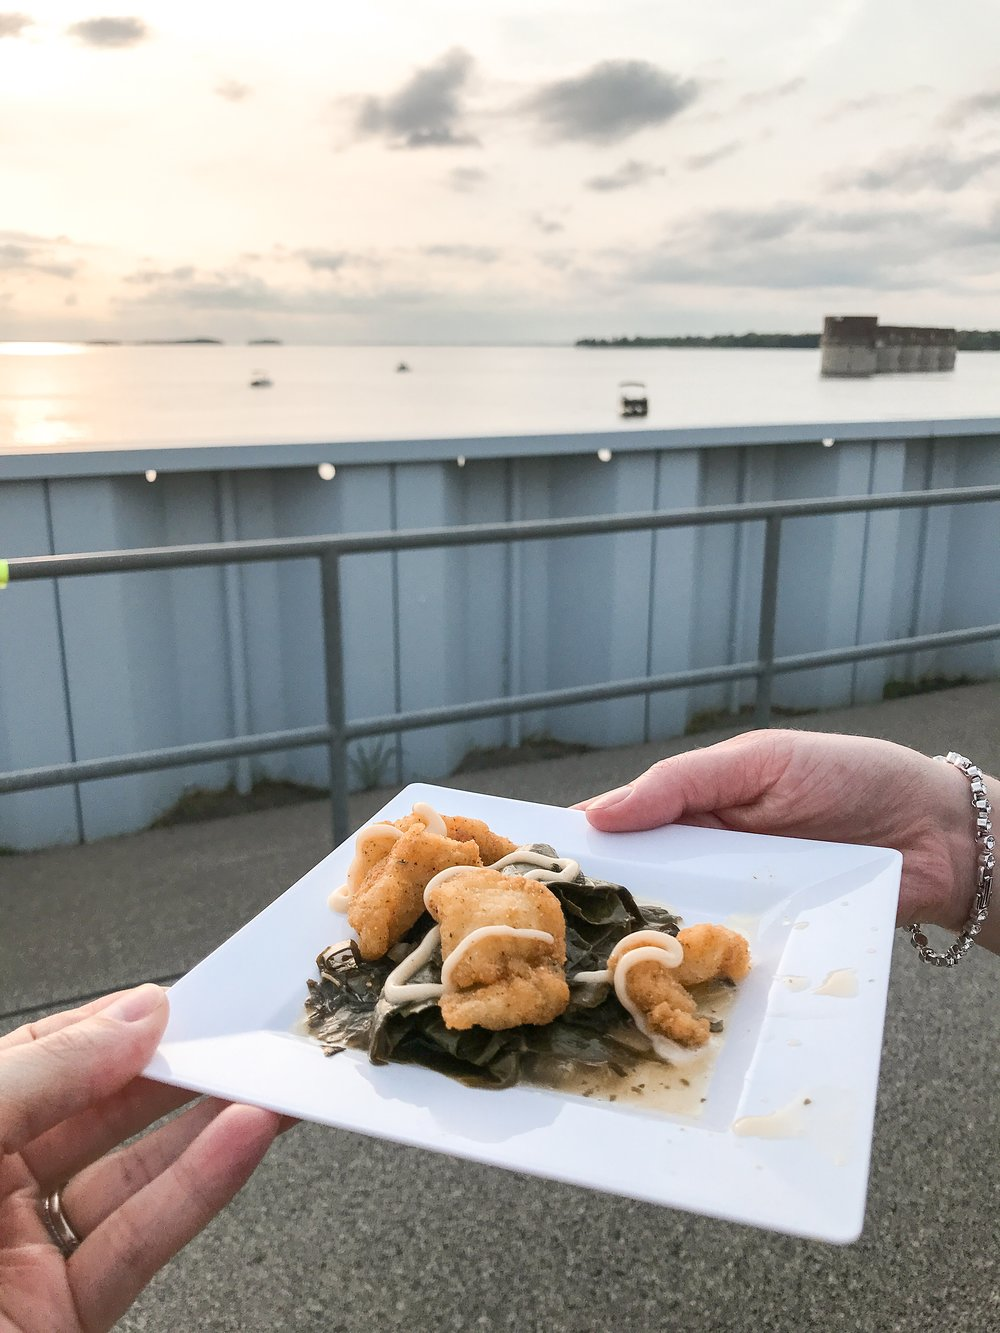 I mean, can ya get a better view with some fried catfish and collards?